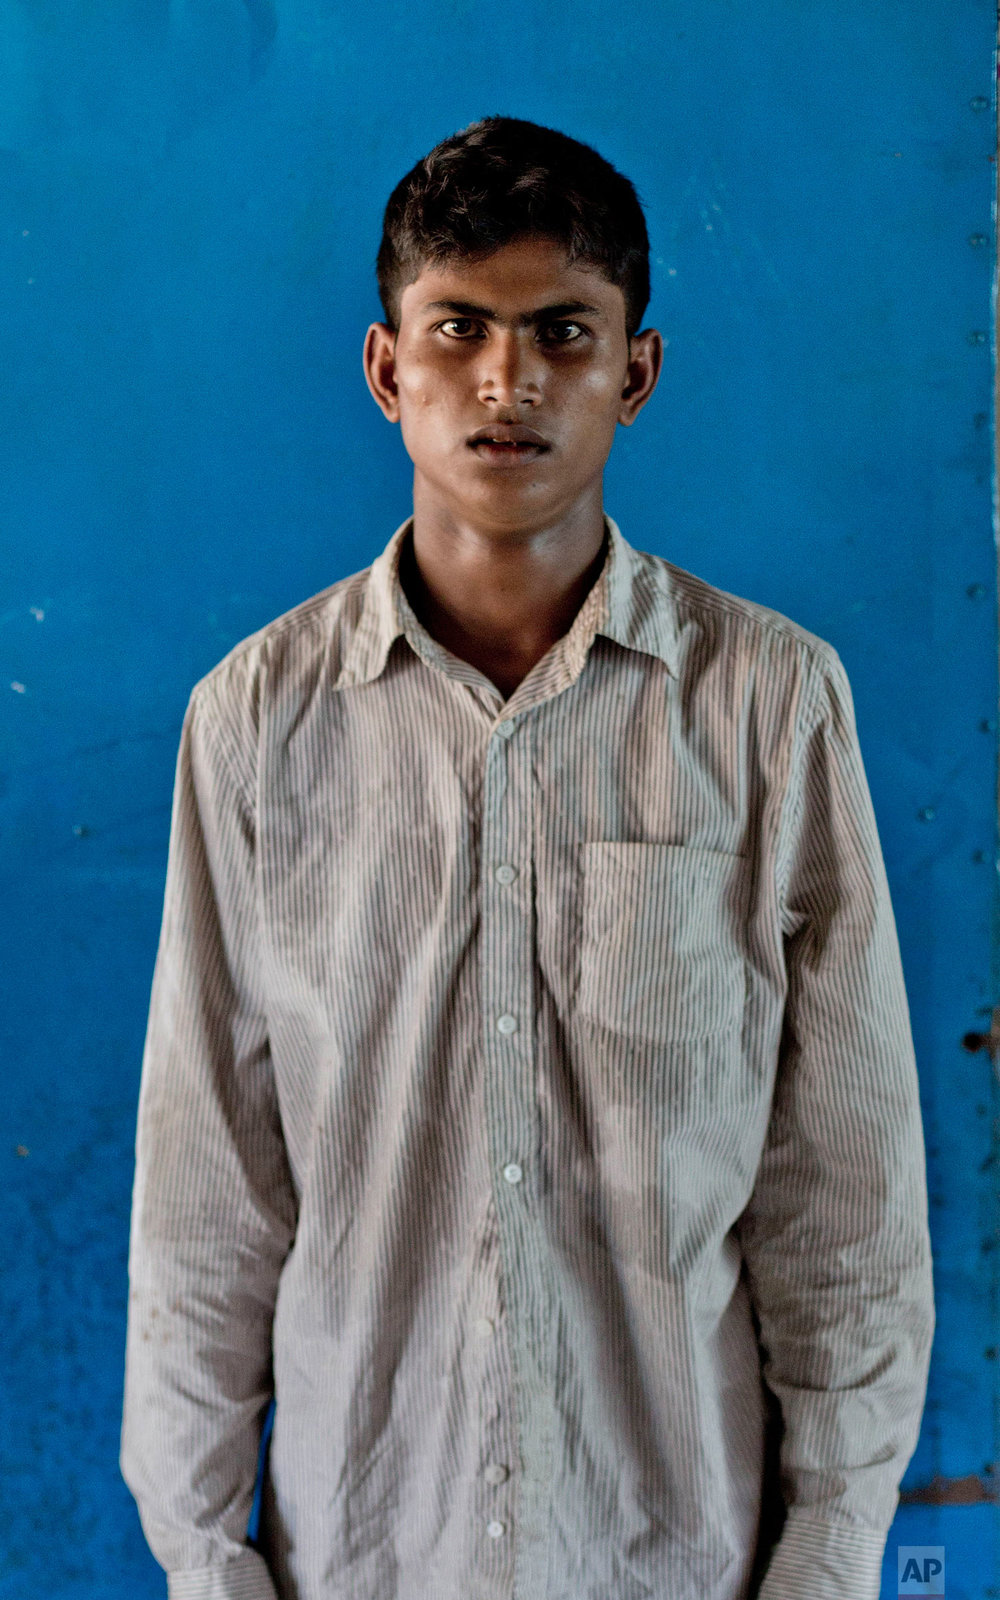 In this Oct. 1, 2017, photo, a 22-year-old Rohingya Muslim Nuro Salam, from Myanmar's Moidaung Village, stands for a photograph inside a classroom of a school serving as a transit shelter at Kutupalong camp for newly arrived Rohingya refugees in Bangladesh. Nuro's wife Sanzida and son drowned when the boat they were traveling in, to escape from Myanmar, capsized on Sept. 28. (AP Photo/Gemunu Amarasinghe)